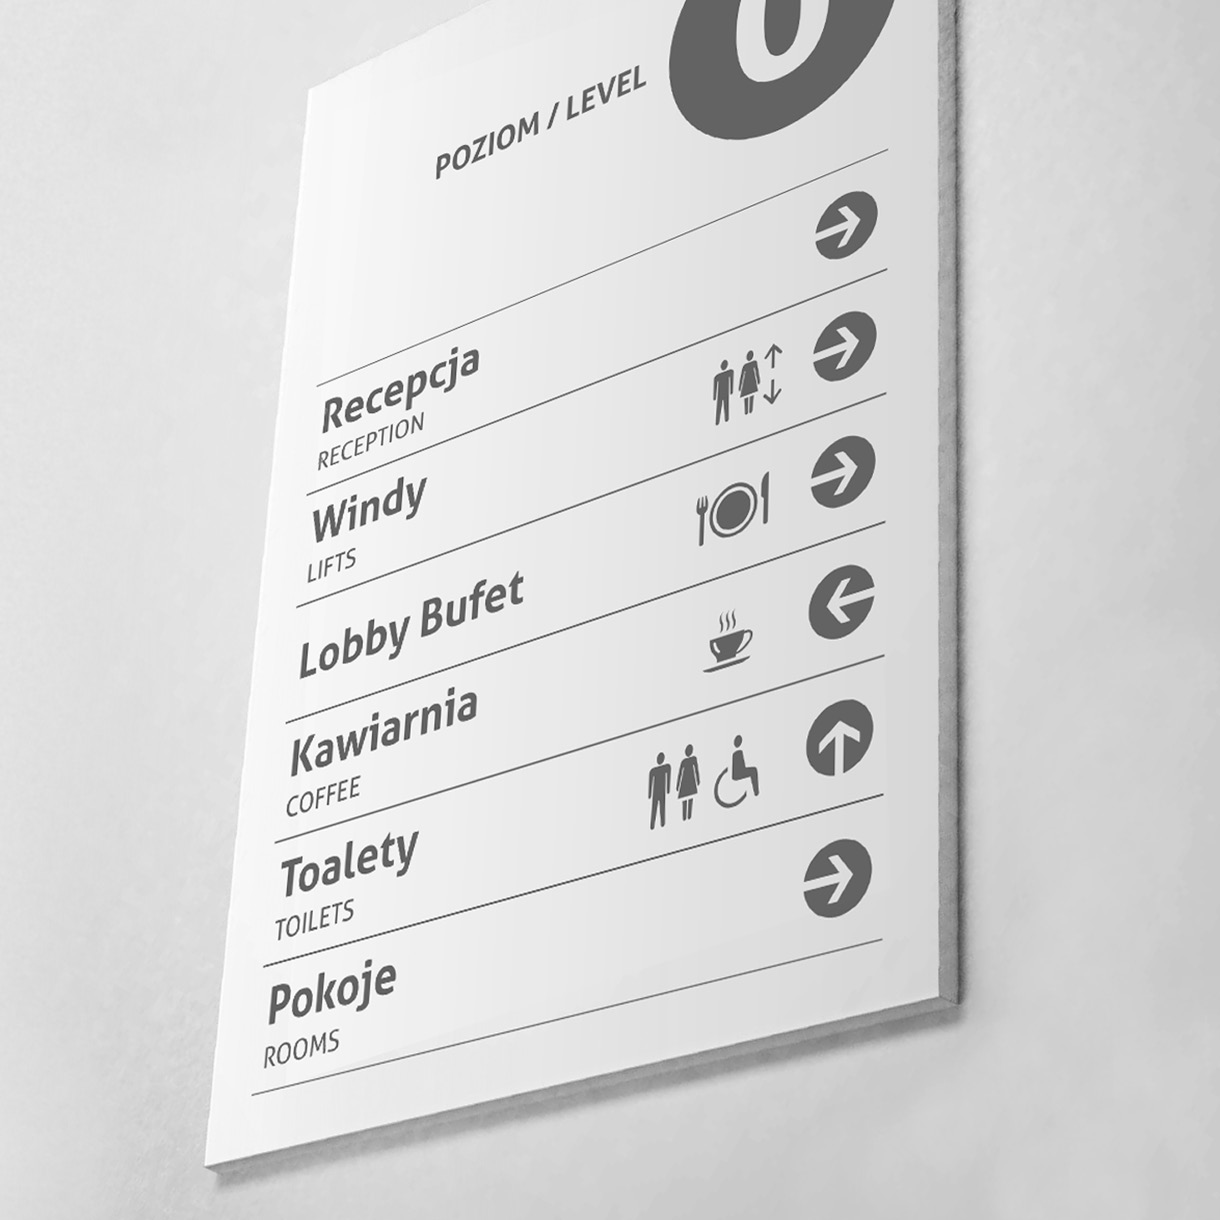 Focus Hotel - Directions sign